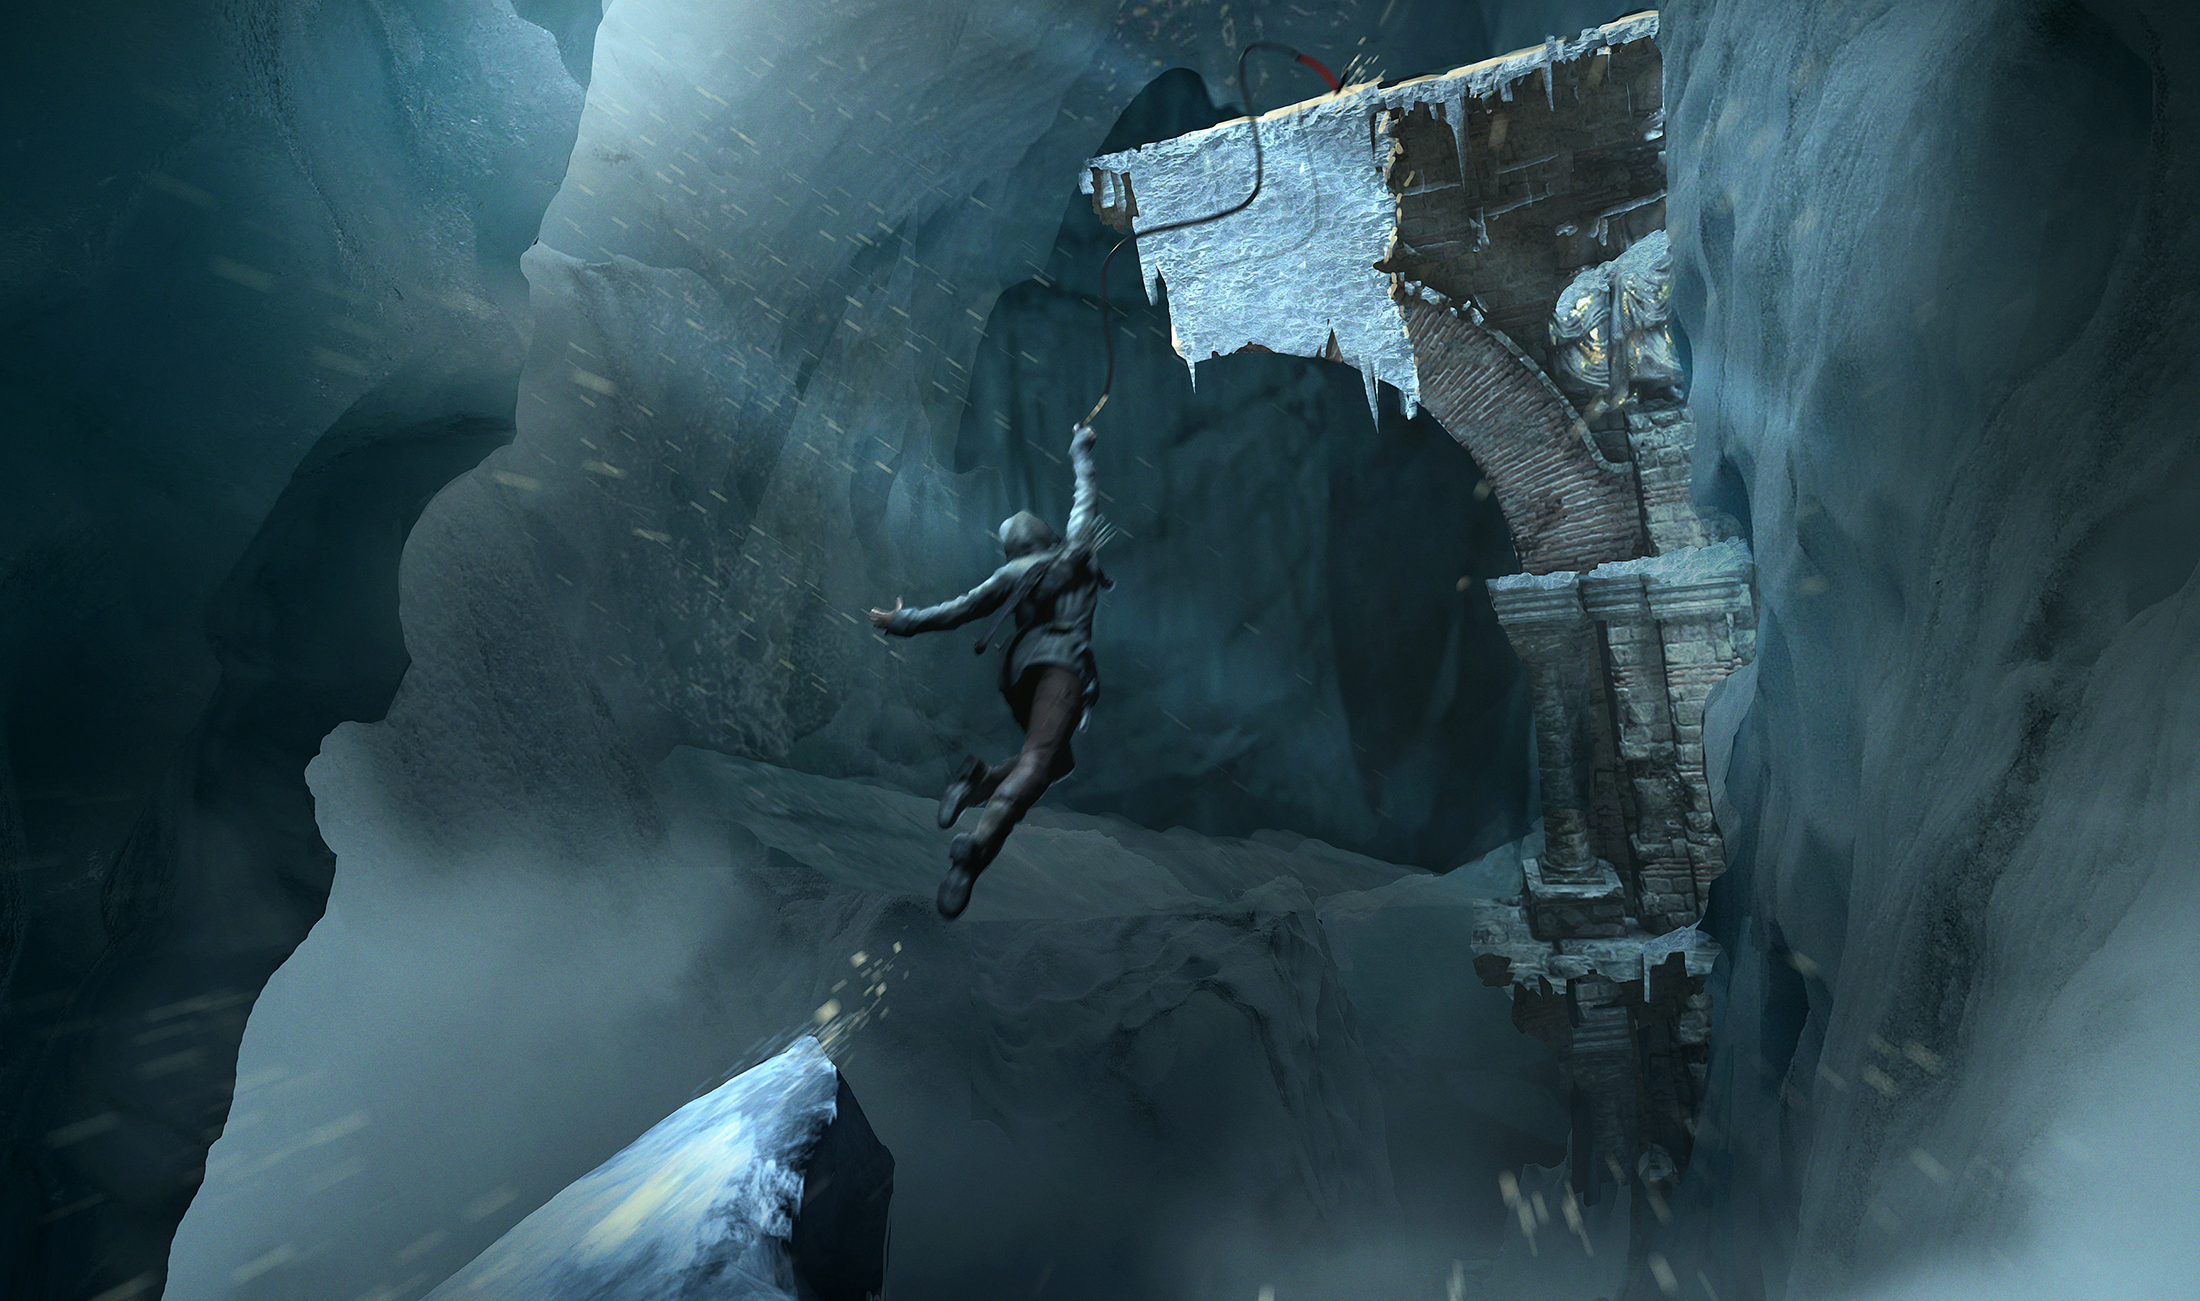 rise-of-the-tomb-raider-concept-2